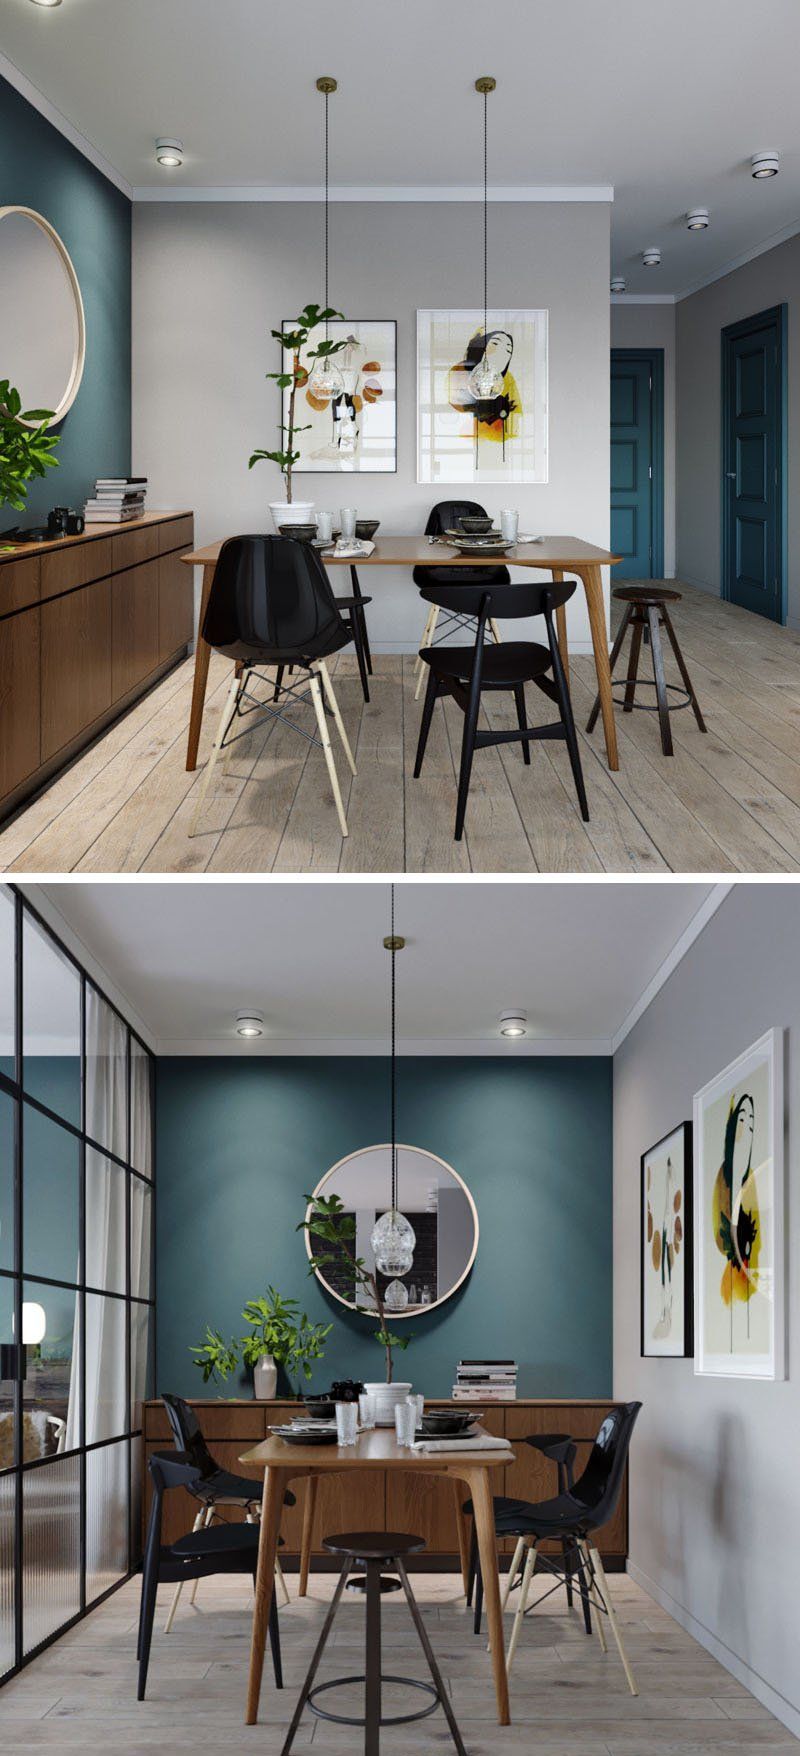 mur bleu canard et style loft blog d co assieds toi salle manger d co salon et salle. Black Bedroom Furniture Sets. Home Design Ideas